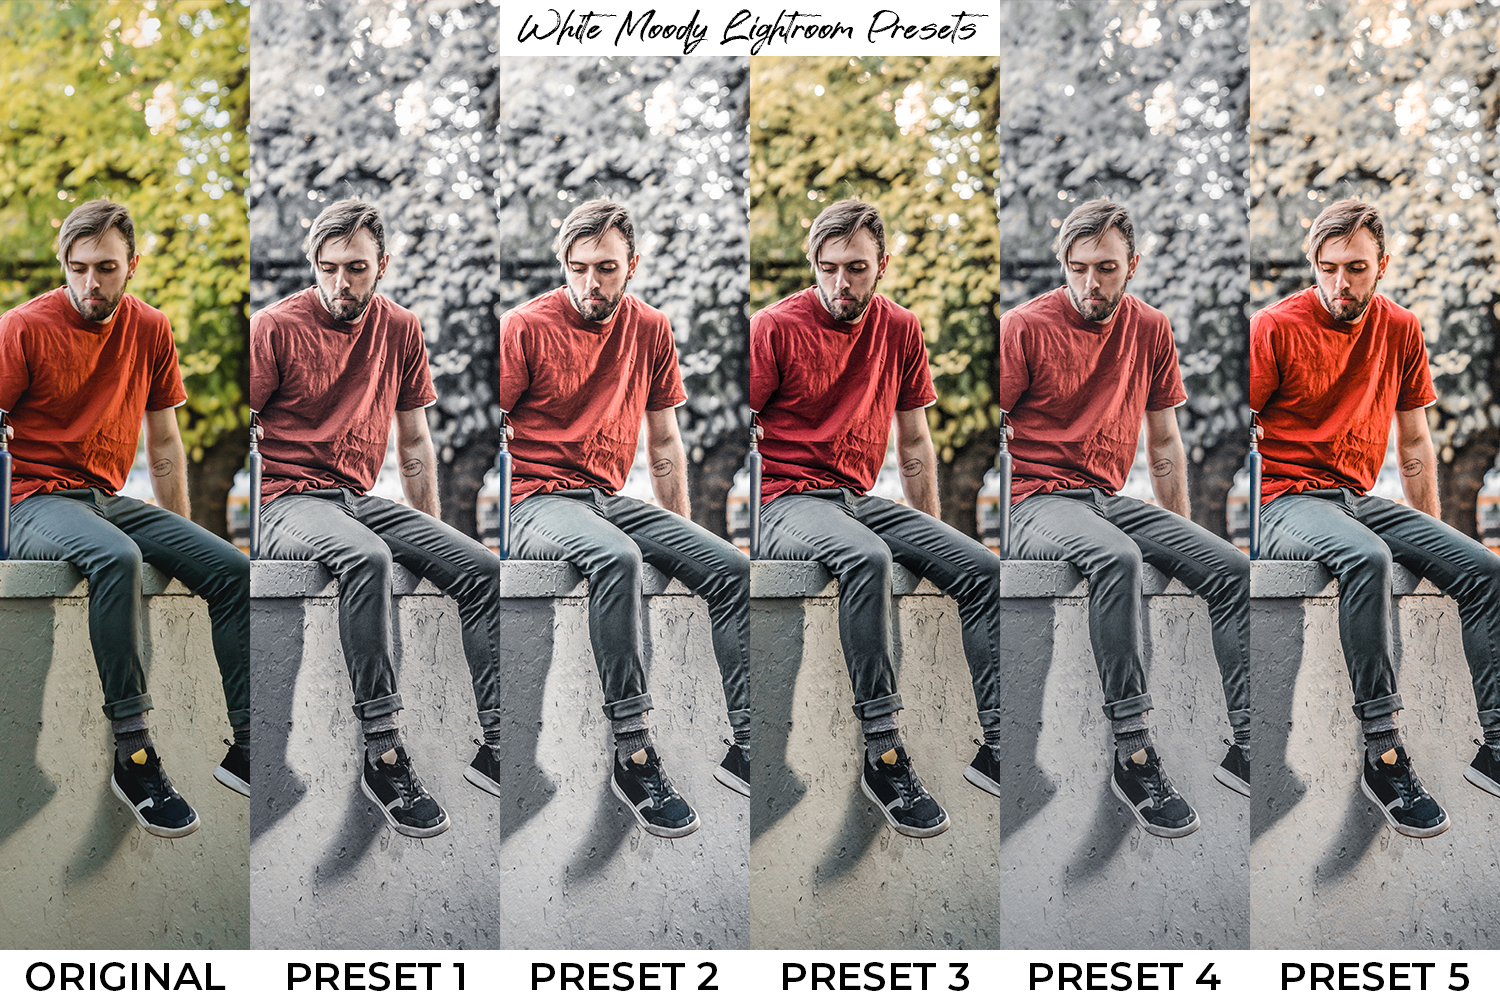 White Moody x5 Lightroom Presets - preset preview 2 -